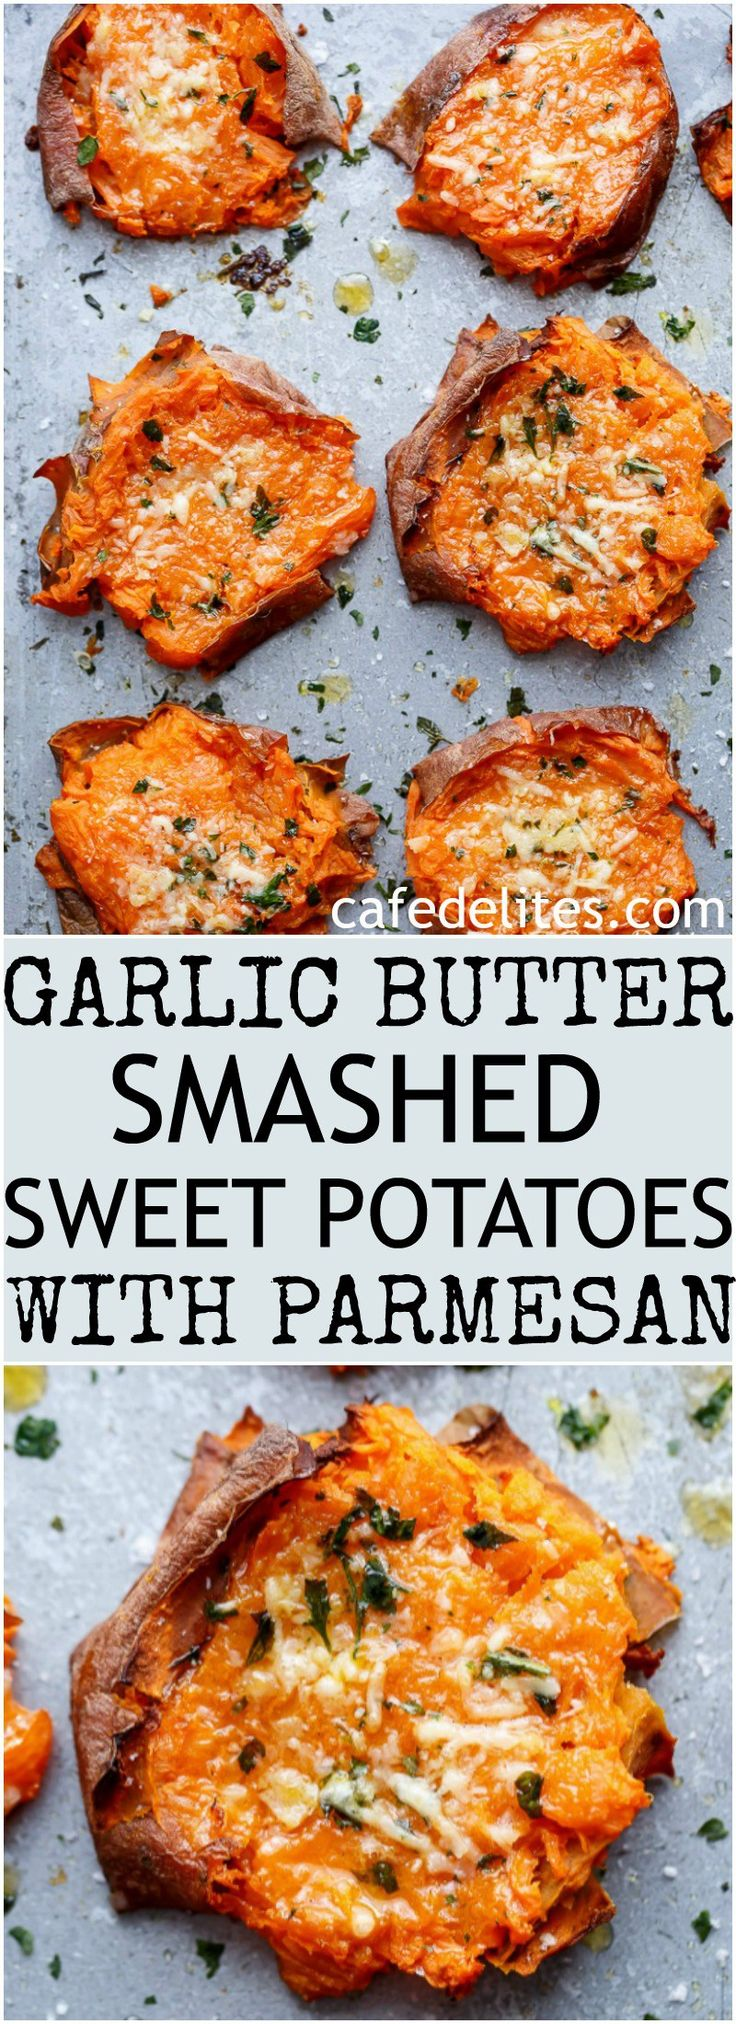 Garlic Butter Smashed Sweet Potatoes With Parmesan Cheese | https://cafedelites.com